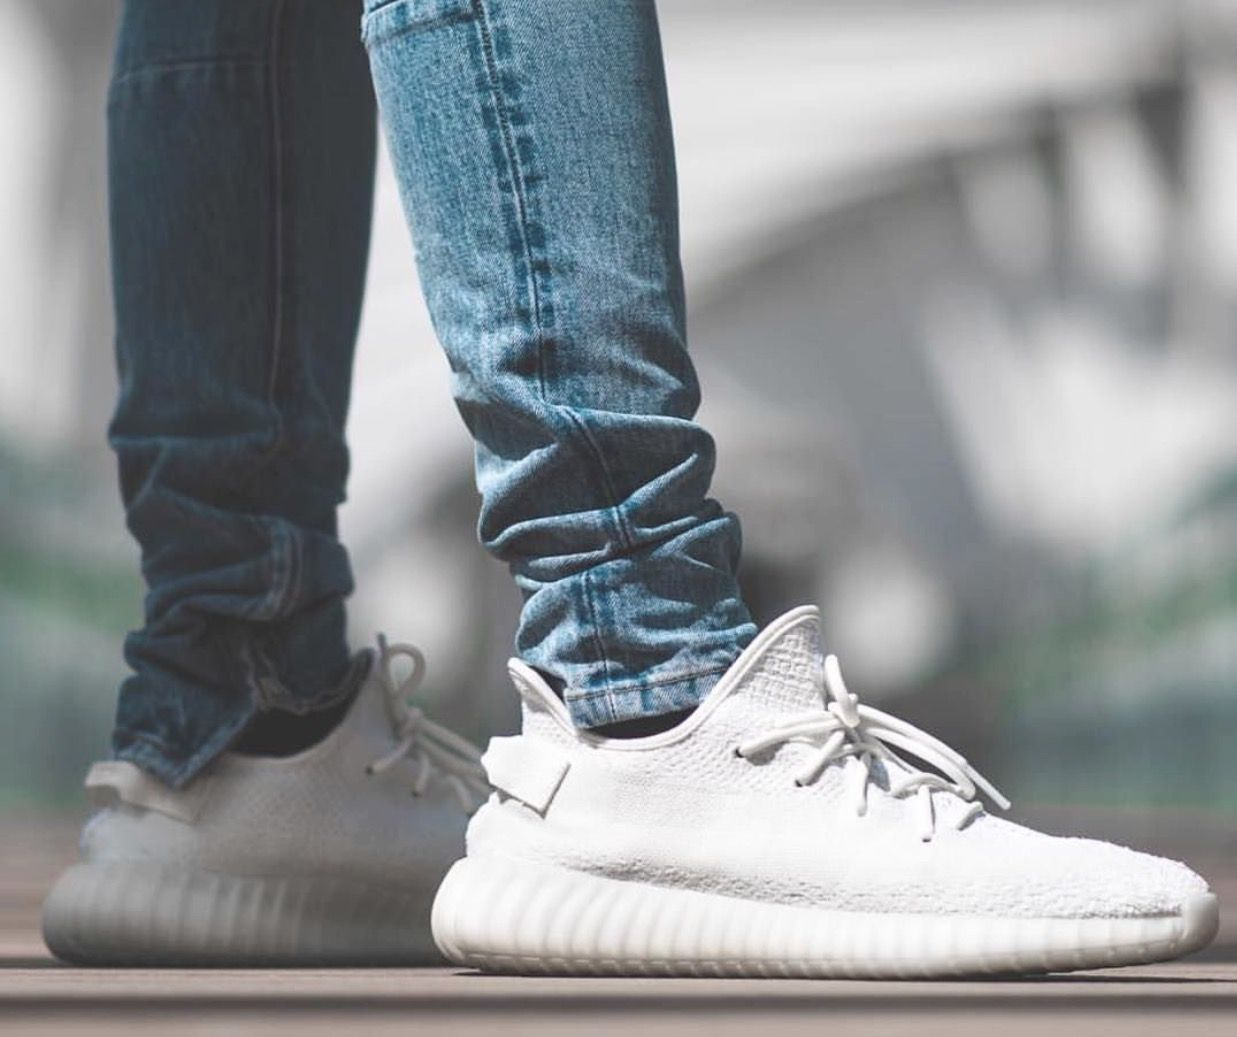 shoes adidas yeezy boost v2 add to cart adidas yeezy 350 boost more than $4000 tag price